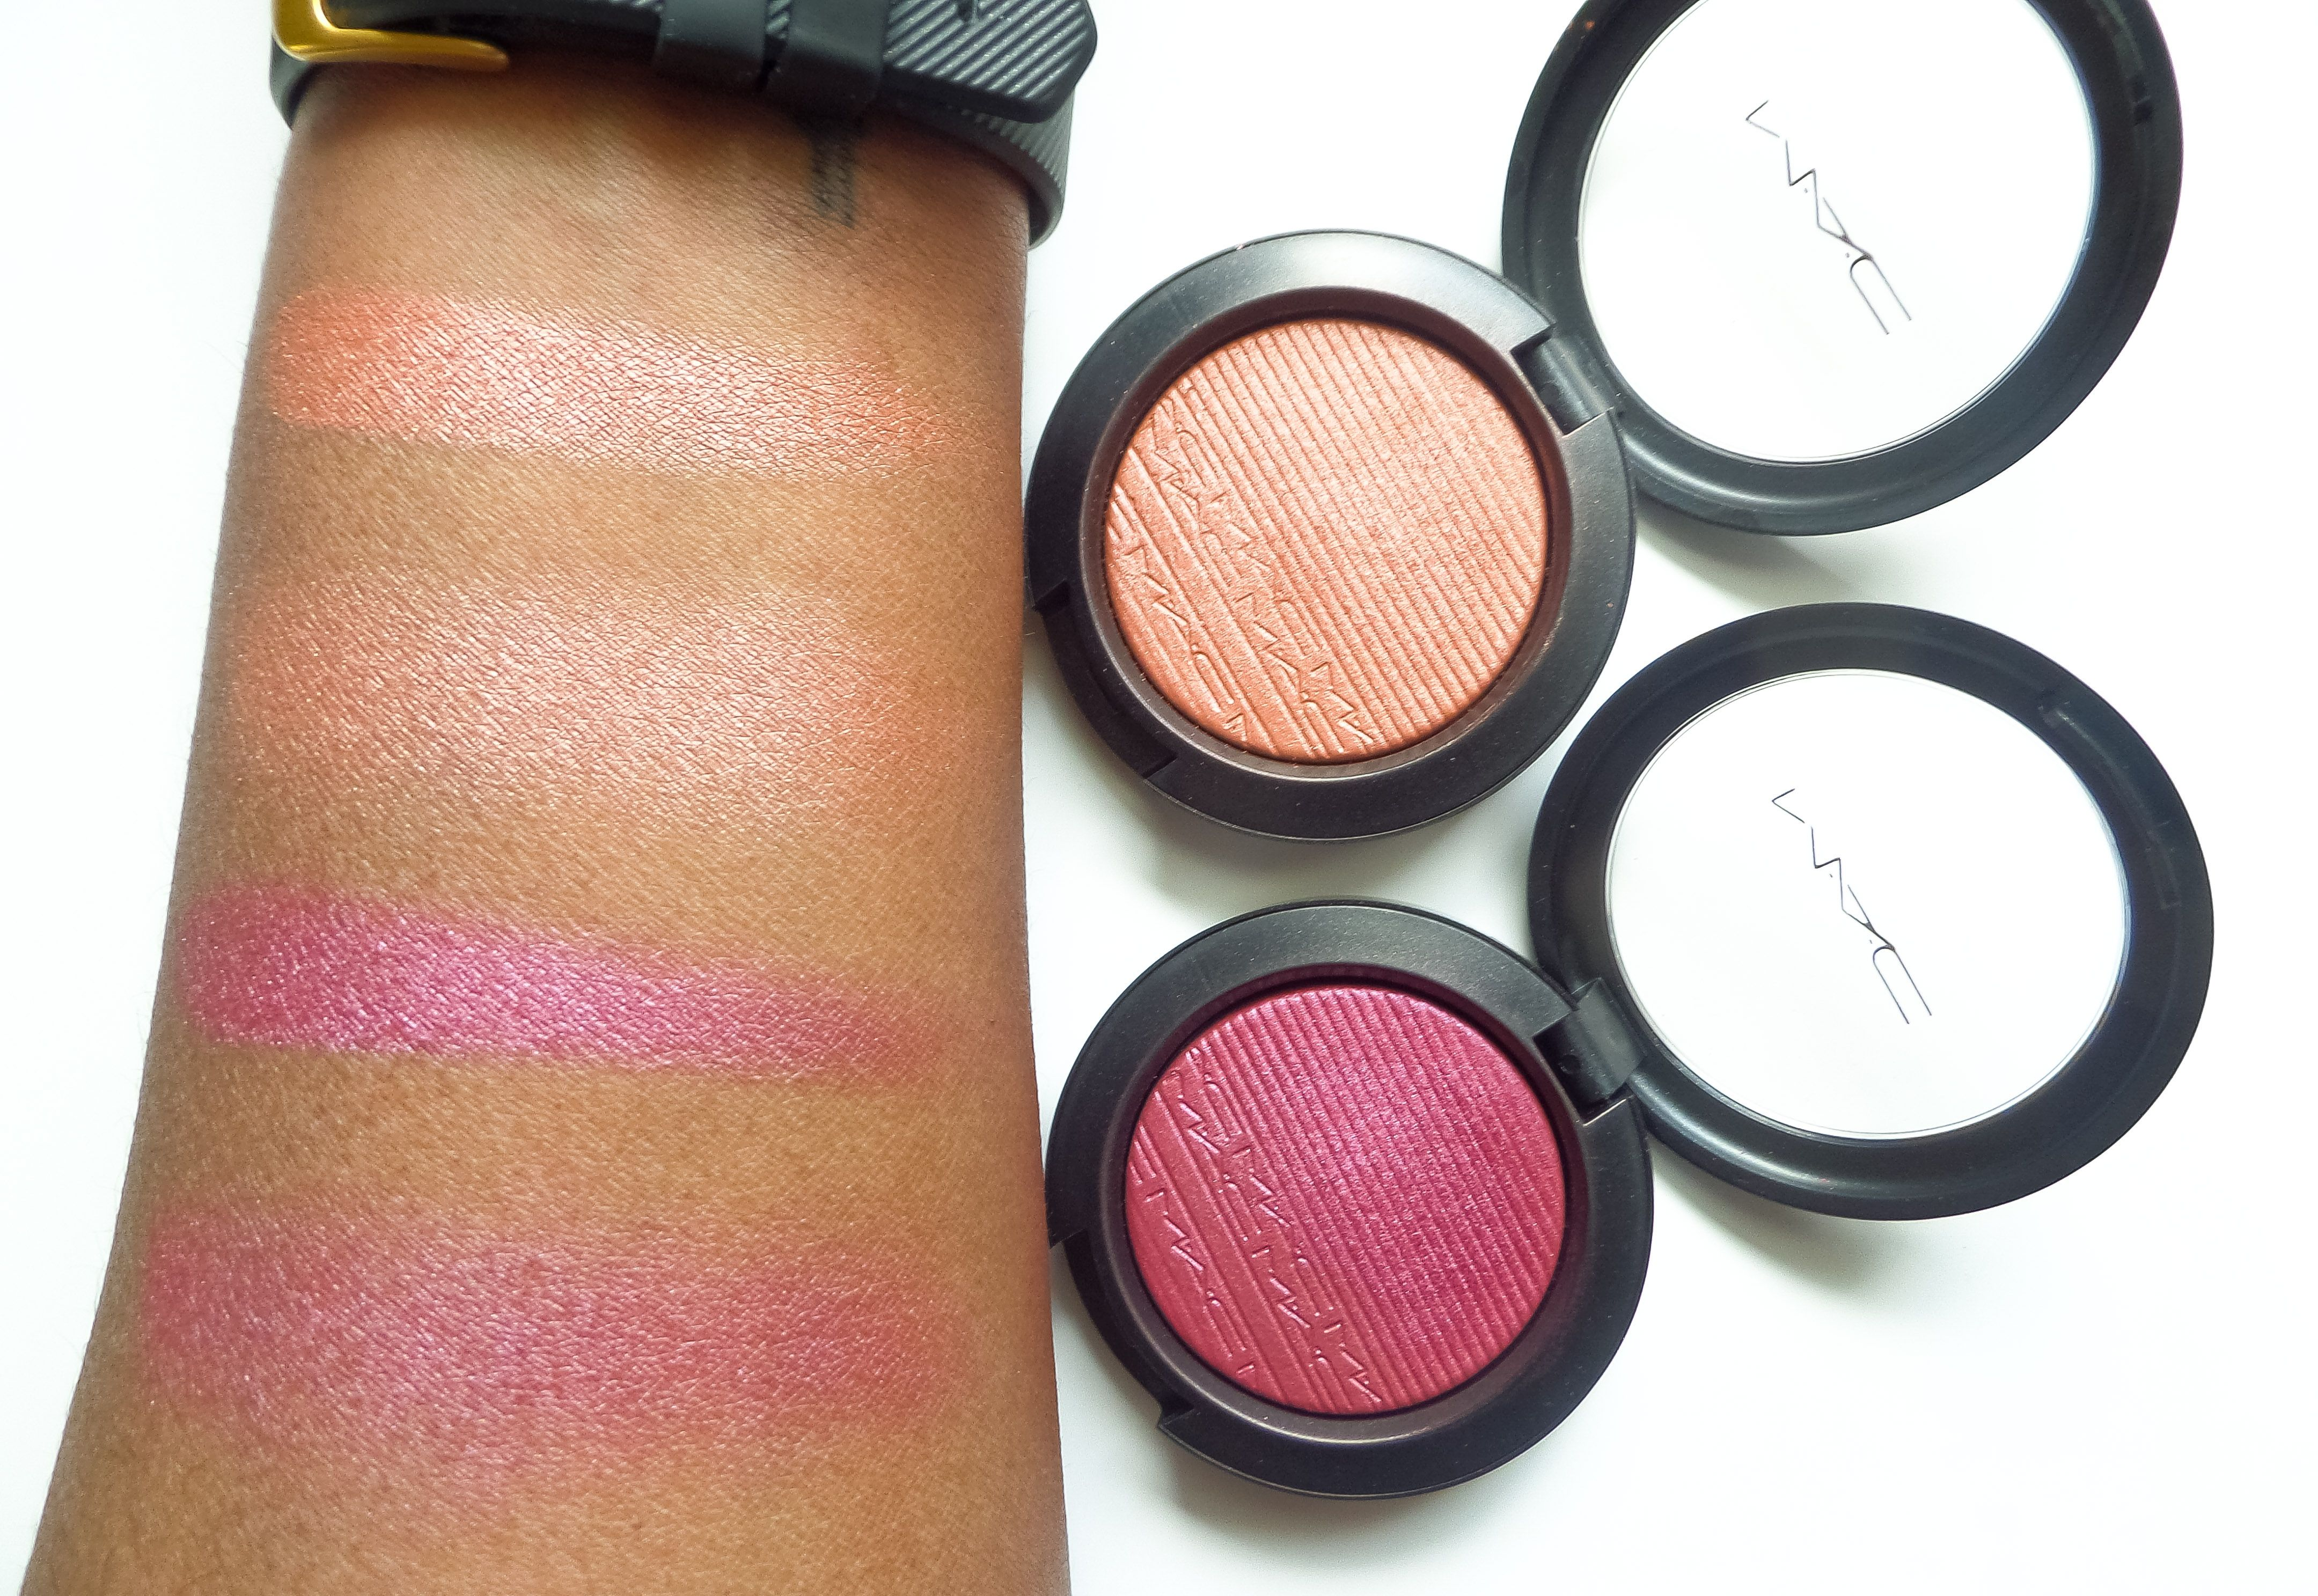 MAC Cosmetics Extra Dimension Blush Swatches in Hushed